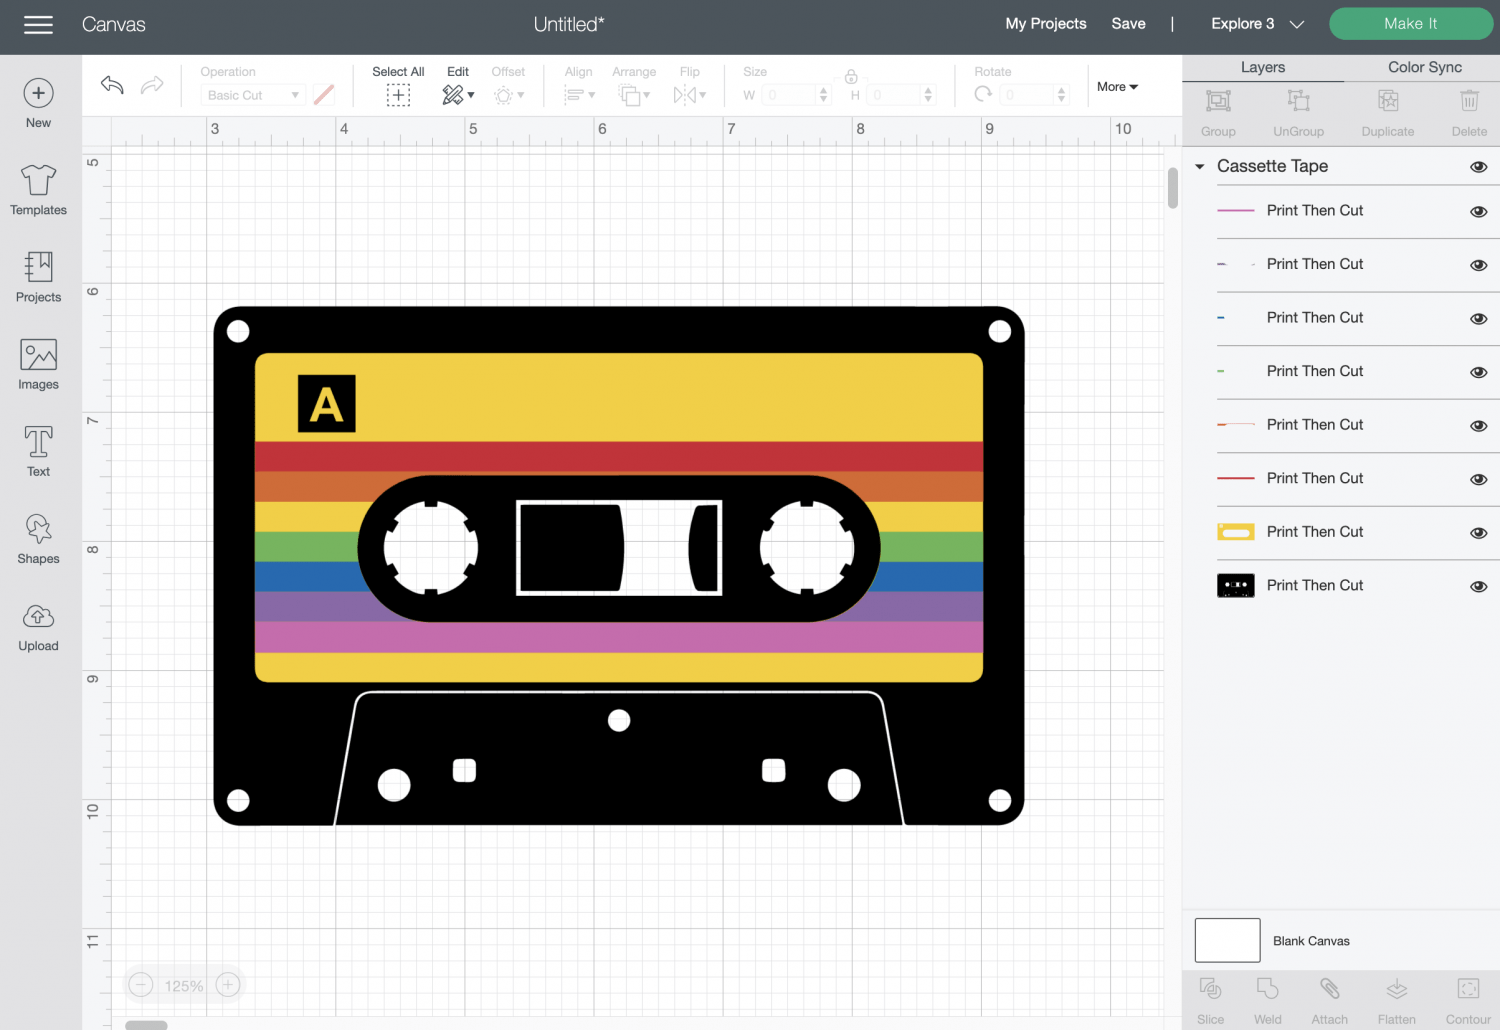 Cricut Design Space: Mix Tape Changed to Print then Cut Linetype